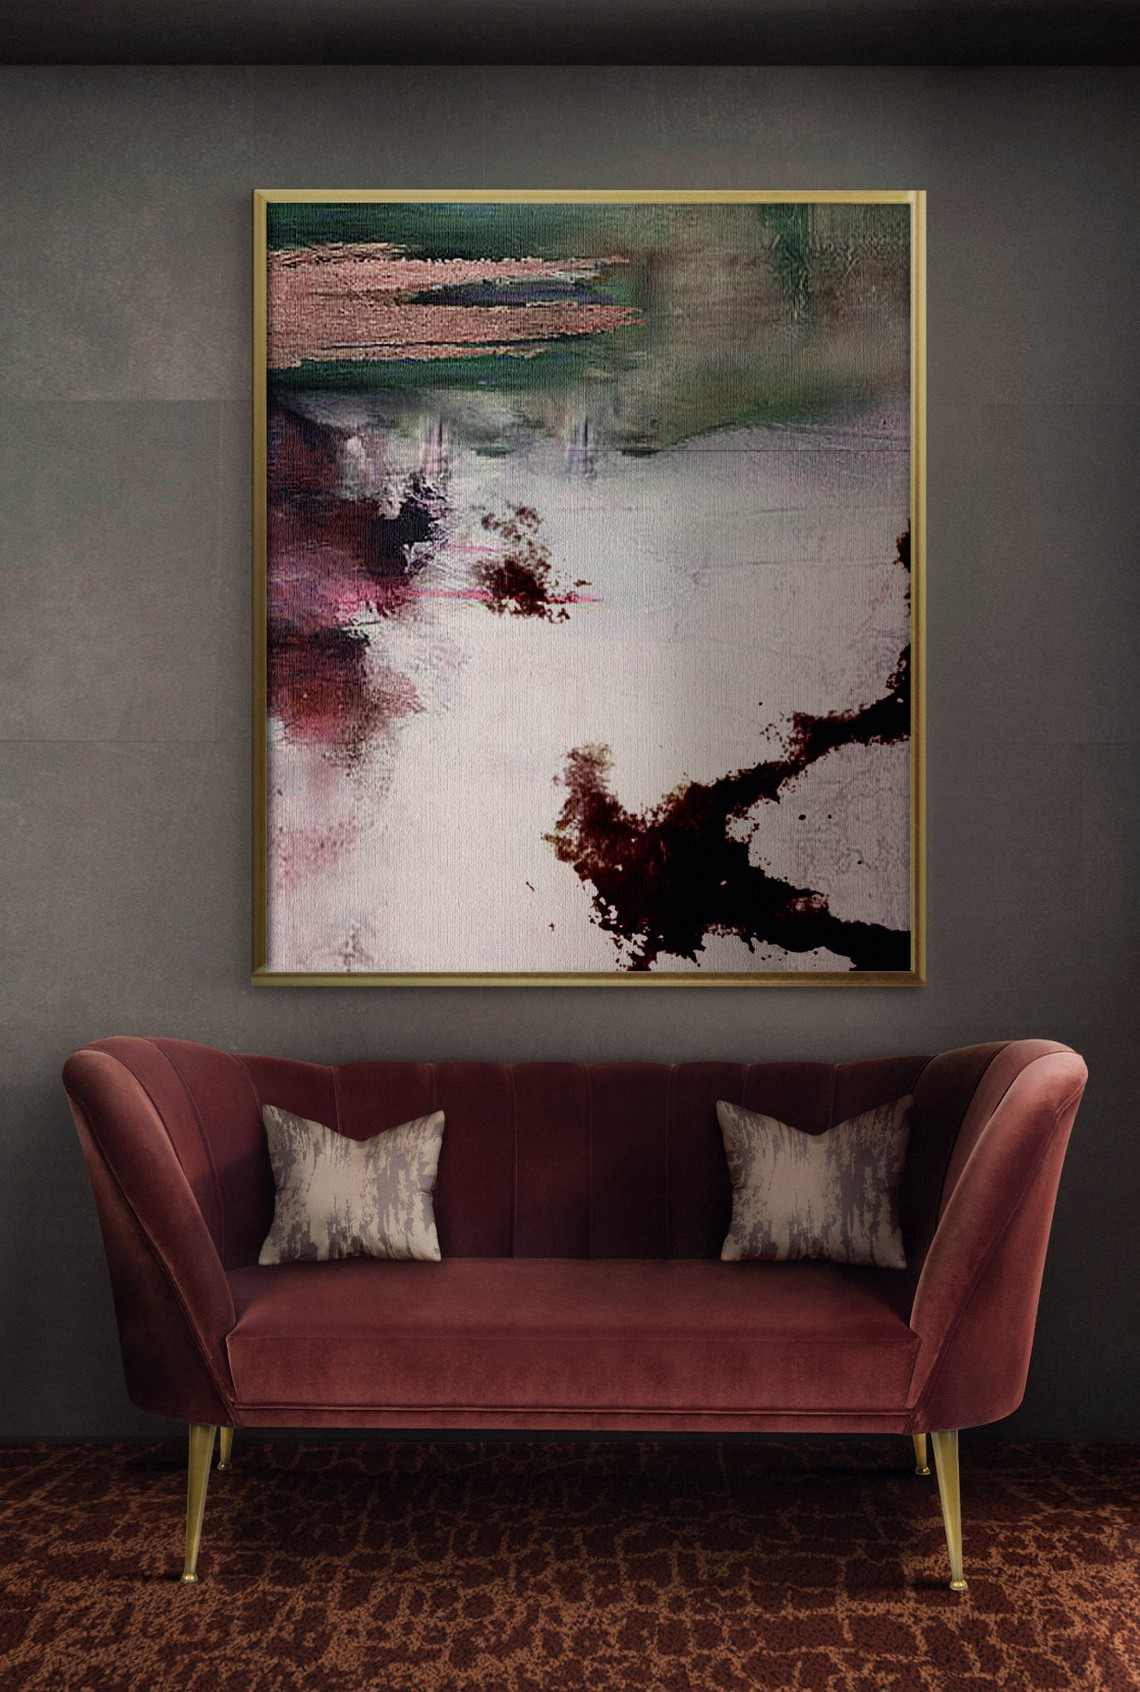 Autumn Design Trends For Inspiring Fresh Ambiances (Part III) autumn design trends Autumn Design Trends For Inspiring Fresh Ambiances (Part III) velvet seducyion